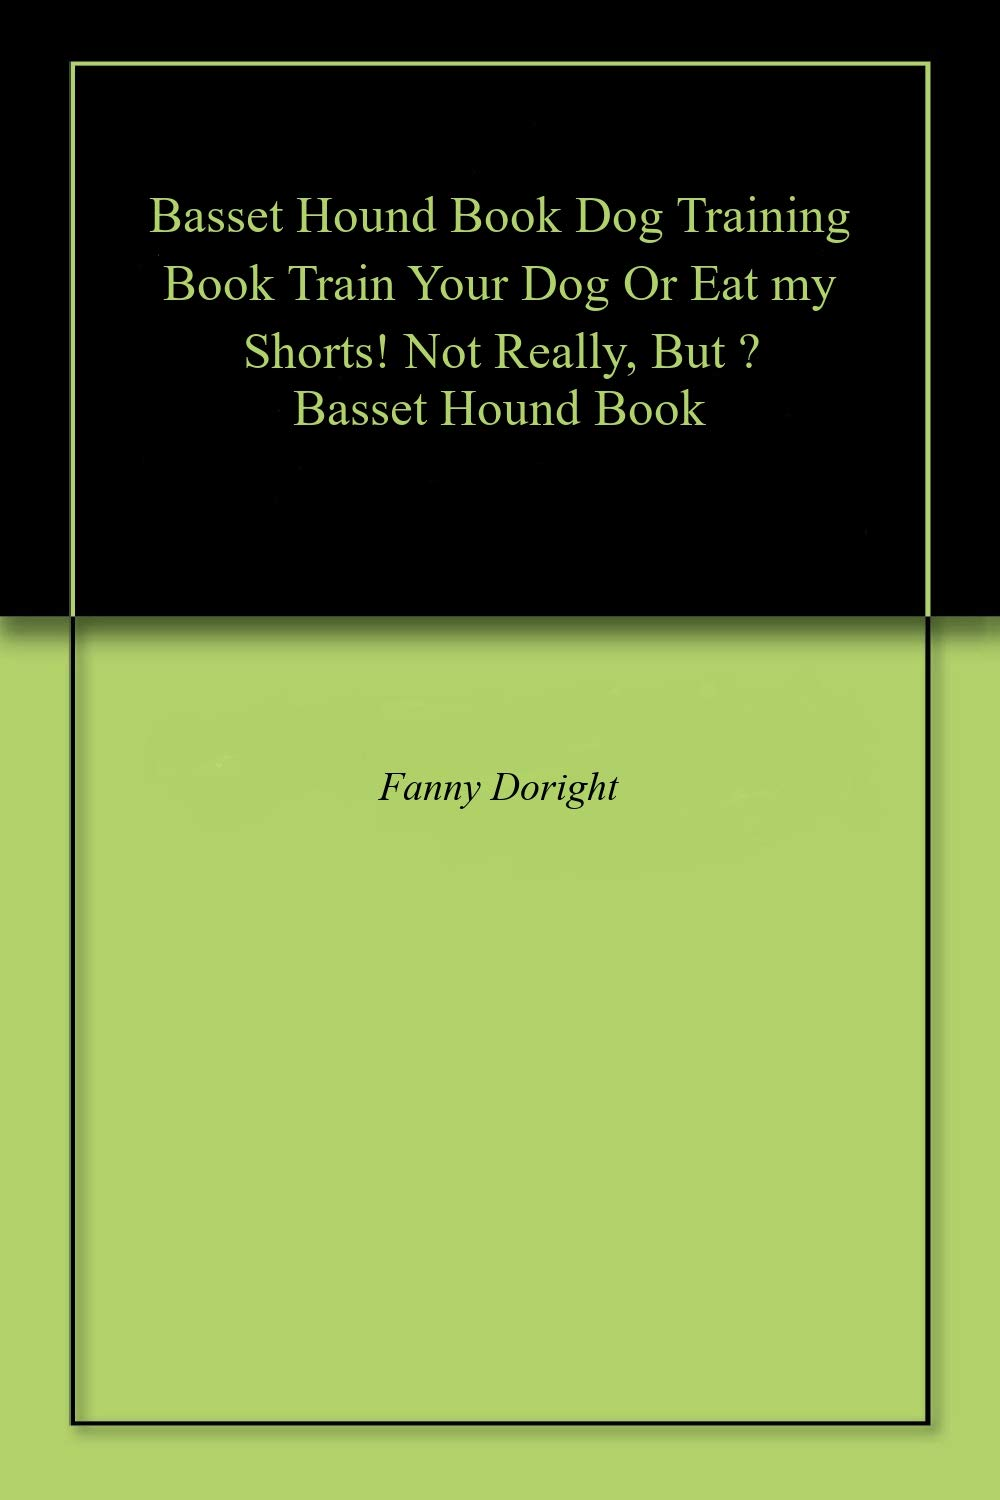 Basset Hound Book Dog Training Book Train Your Dog Or Eat my Shorts! Not Really, But … Basset Hound Book